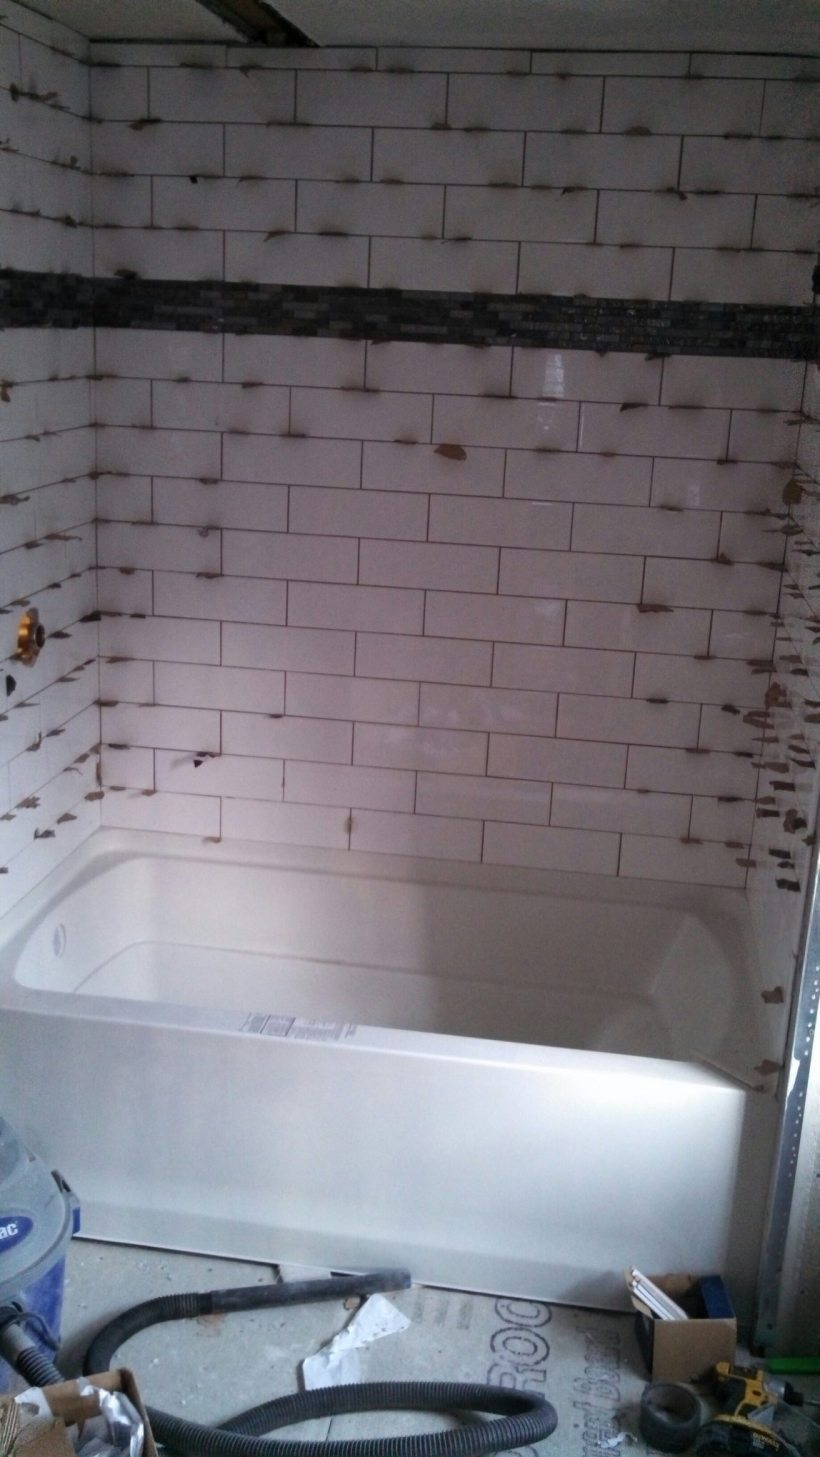 Bathroom Remodel (2 Weeks In)